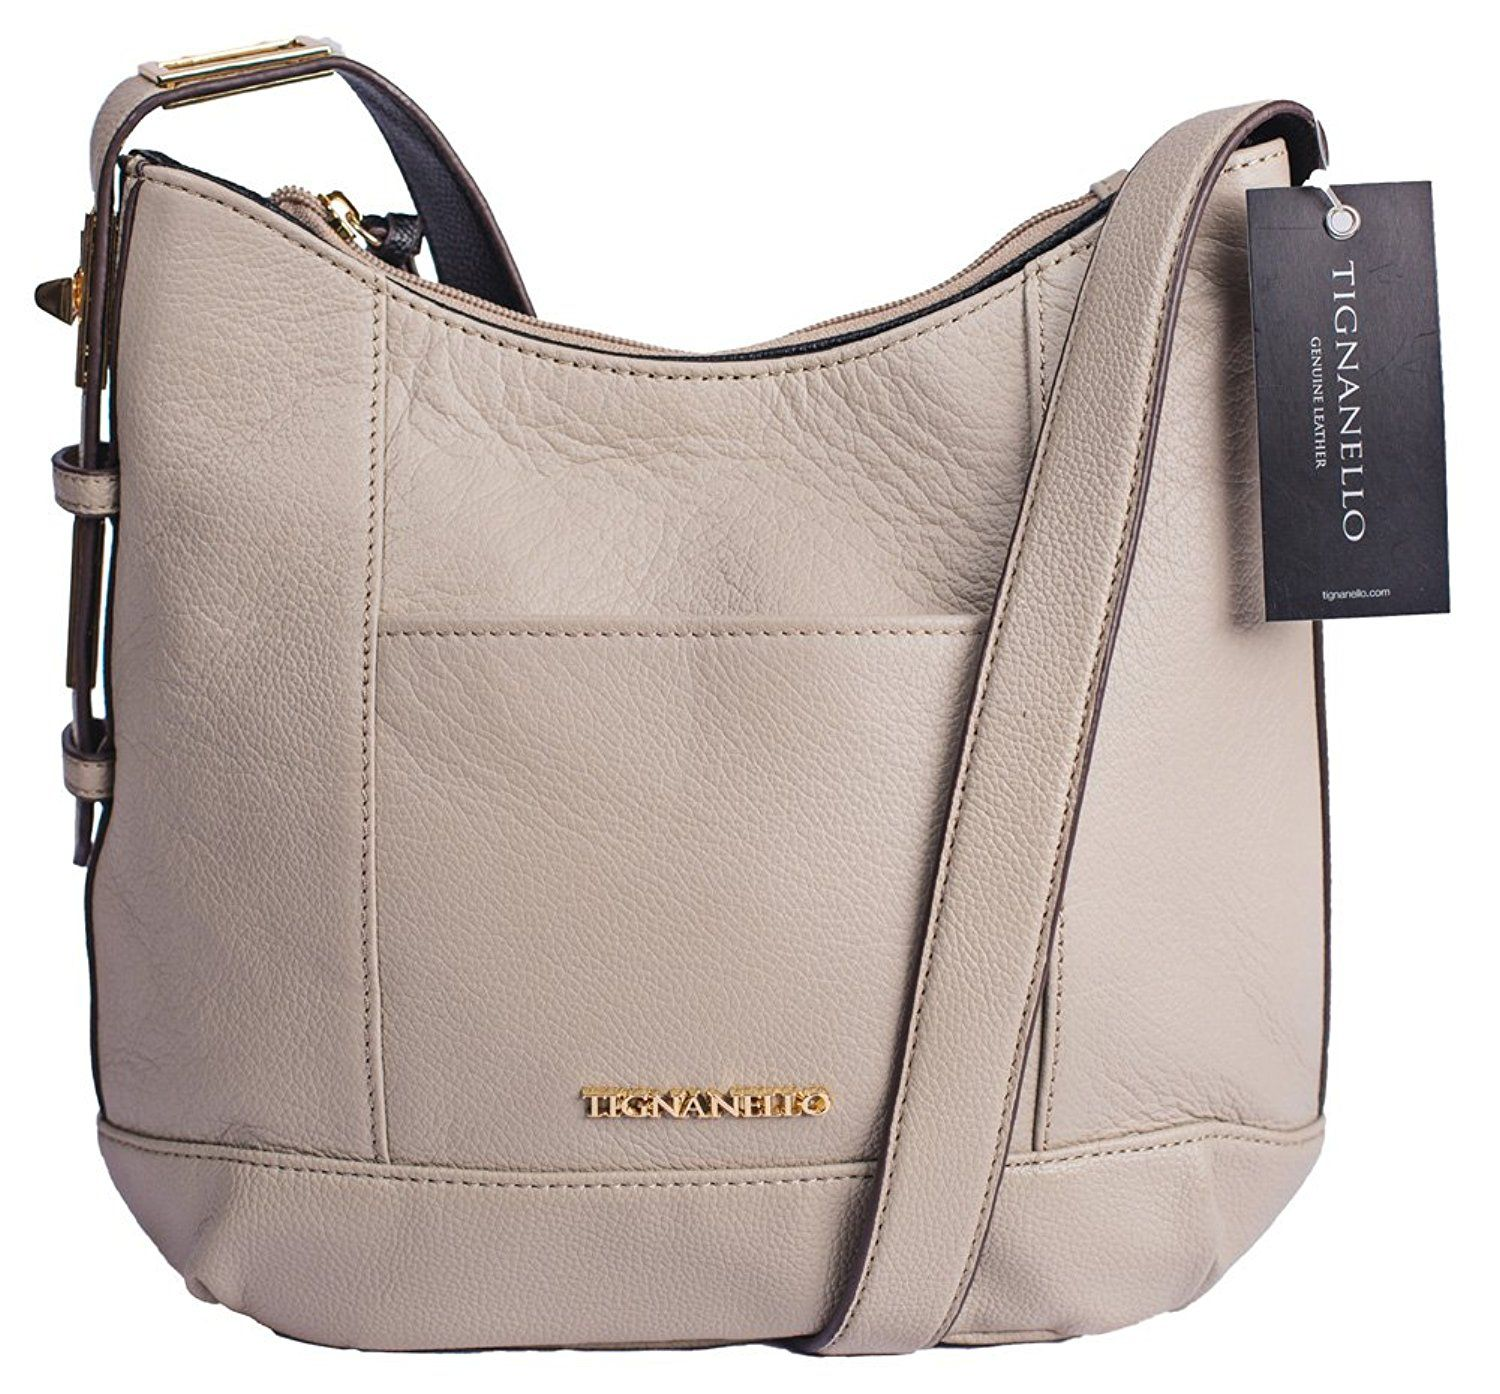 Tignanello Pop Star Hobo Cross Body Tusk A272719 See This Great Image